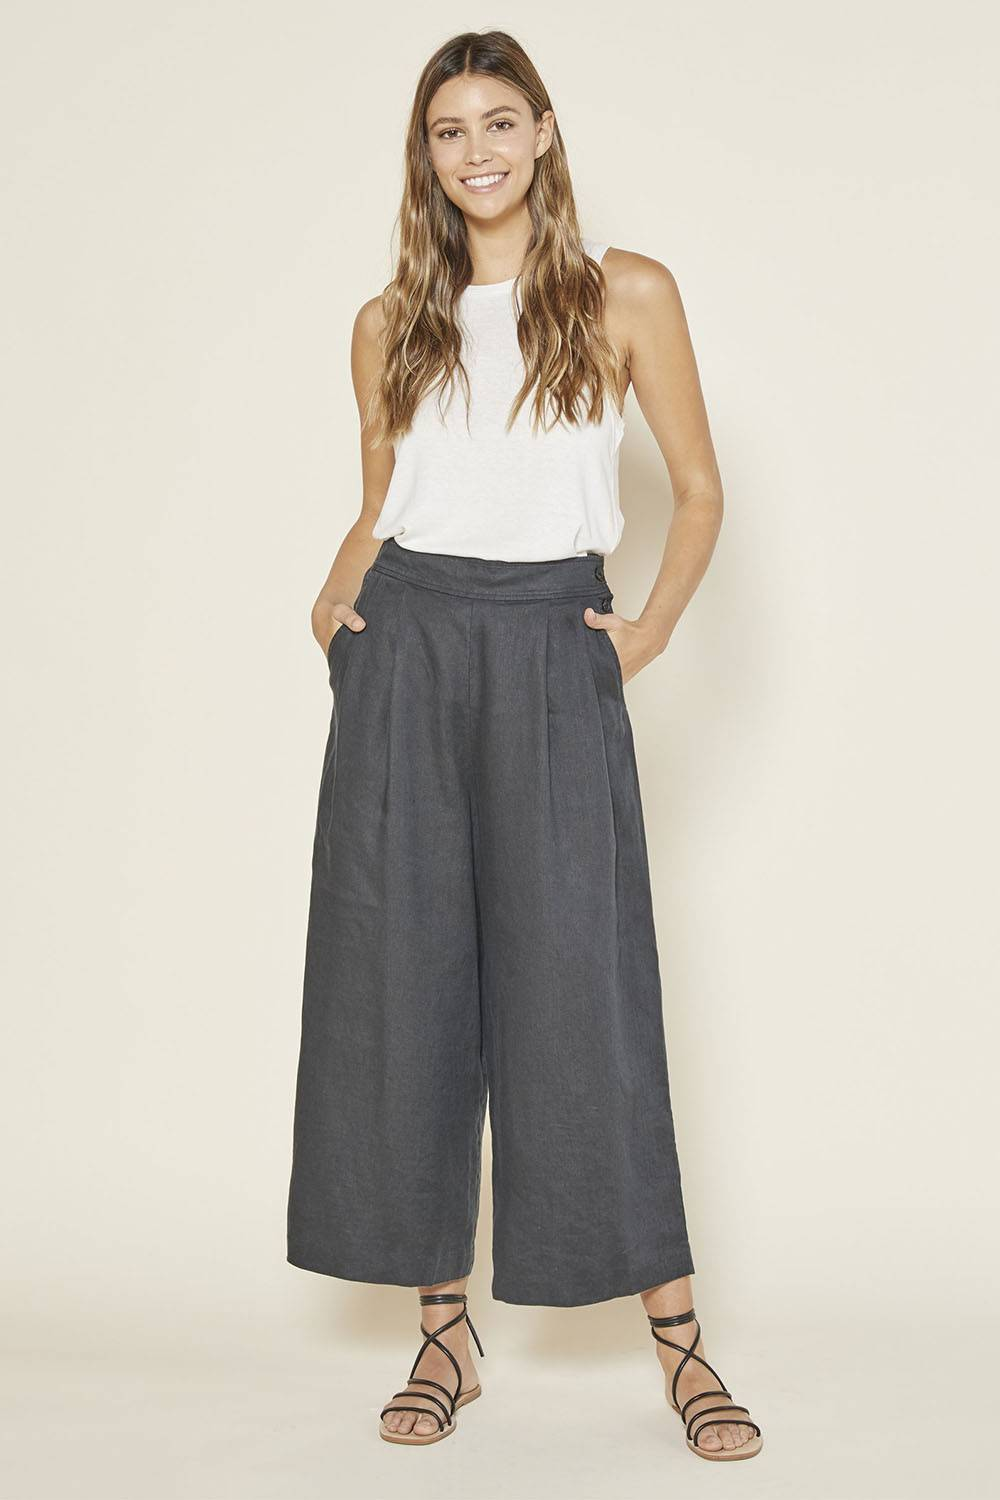 outerknown luxury pure linen pajama